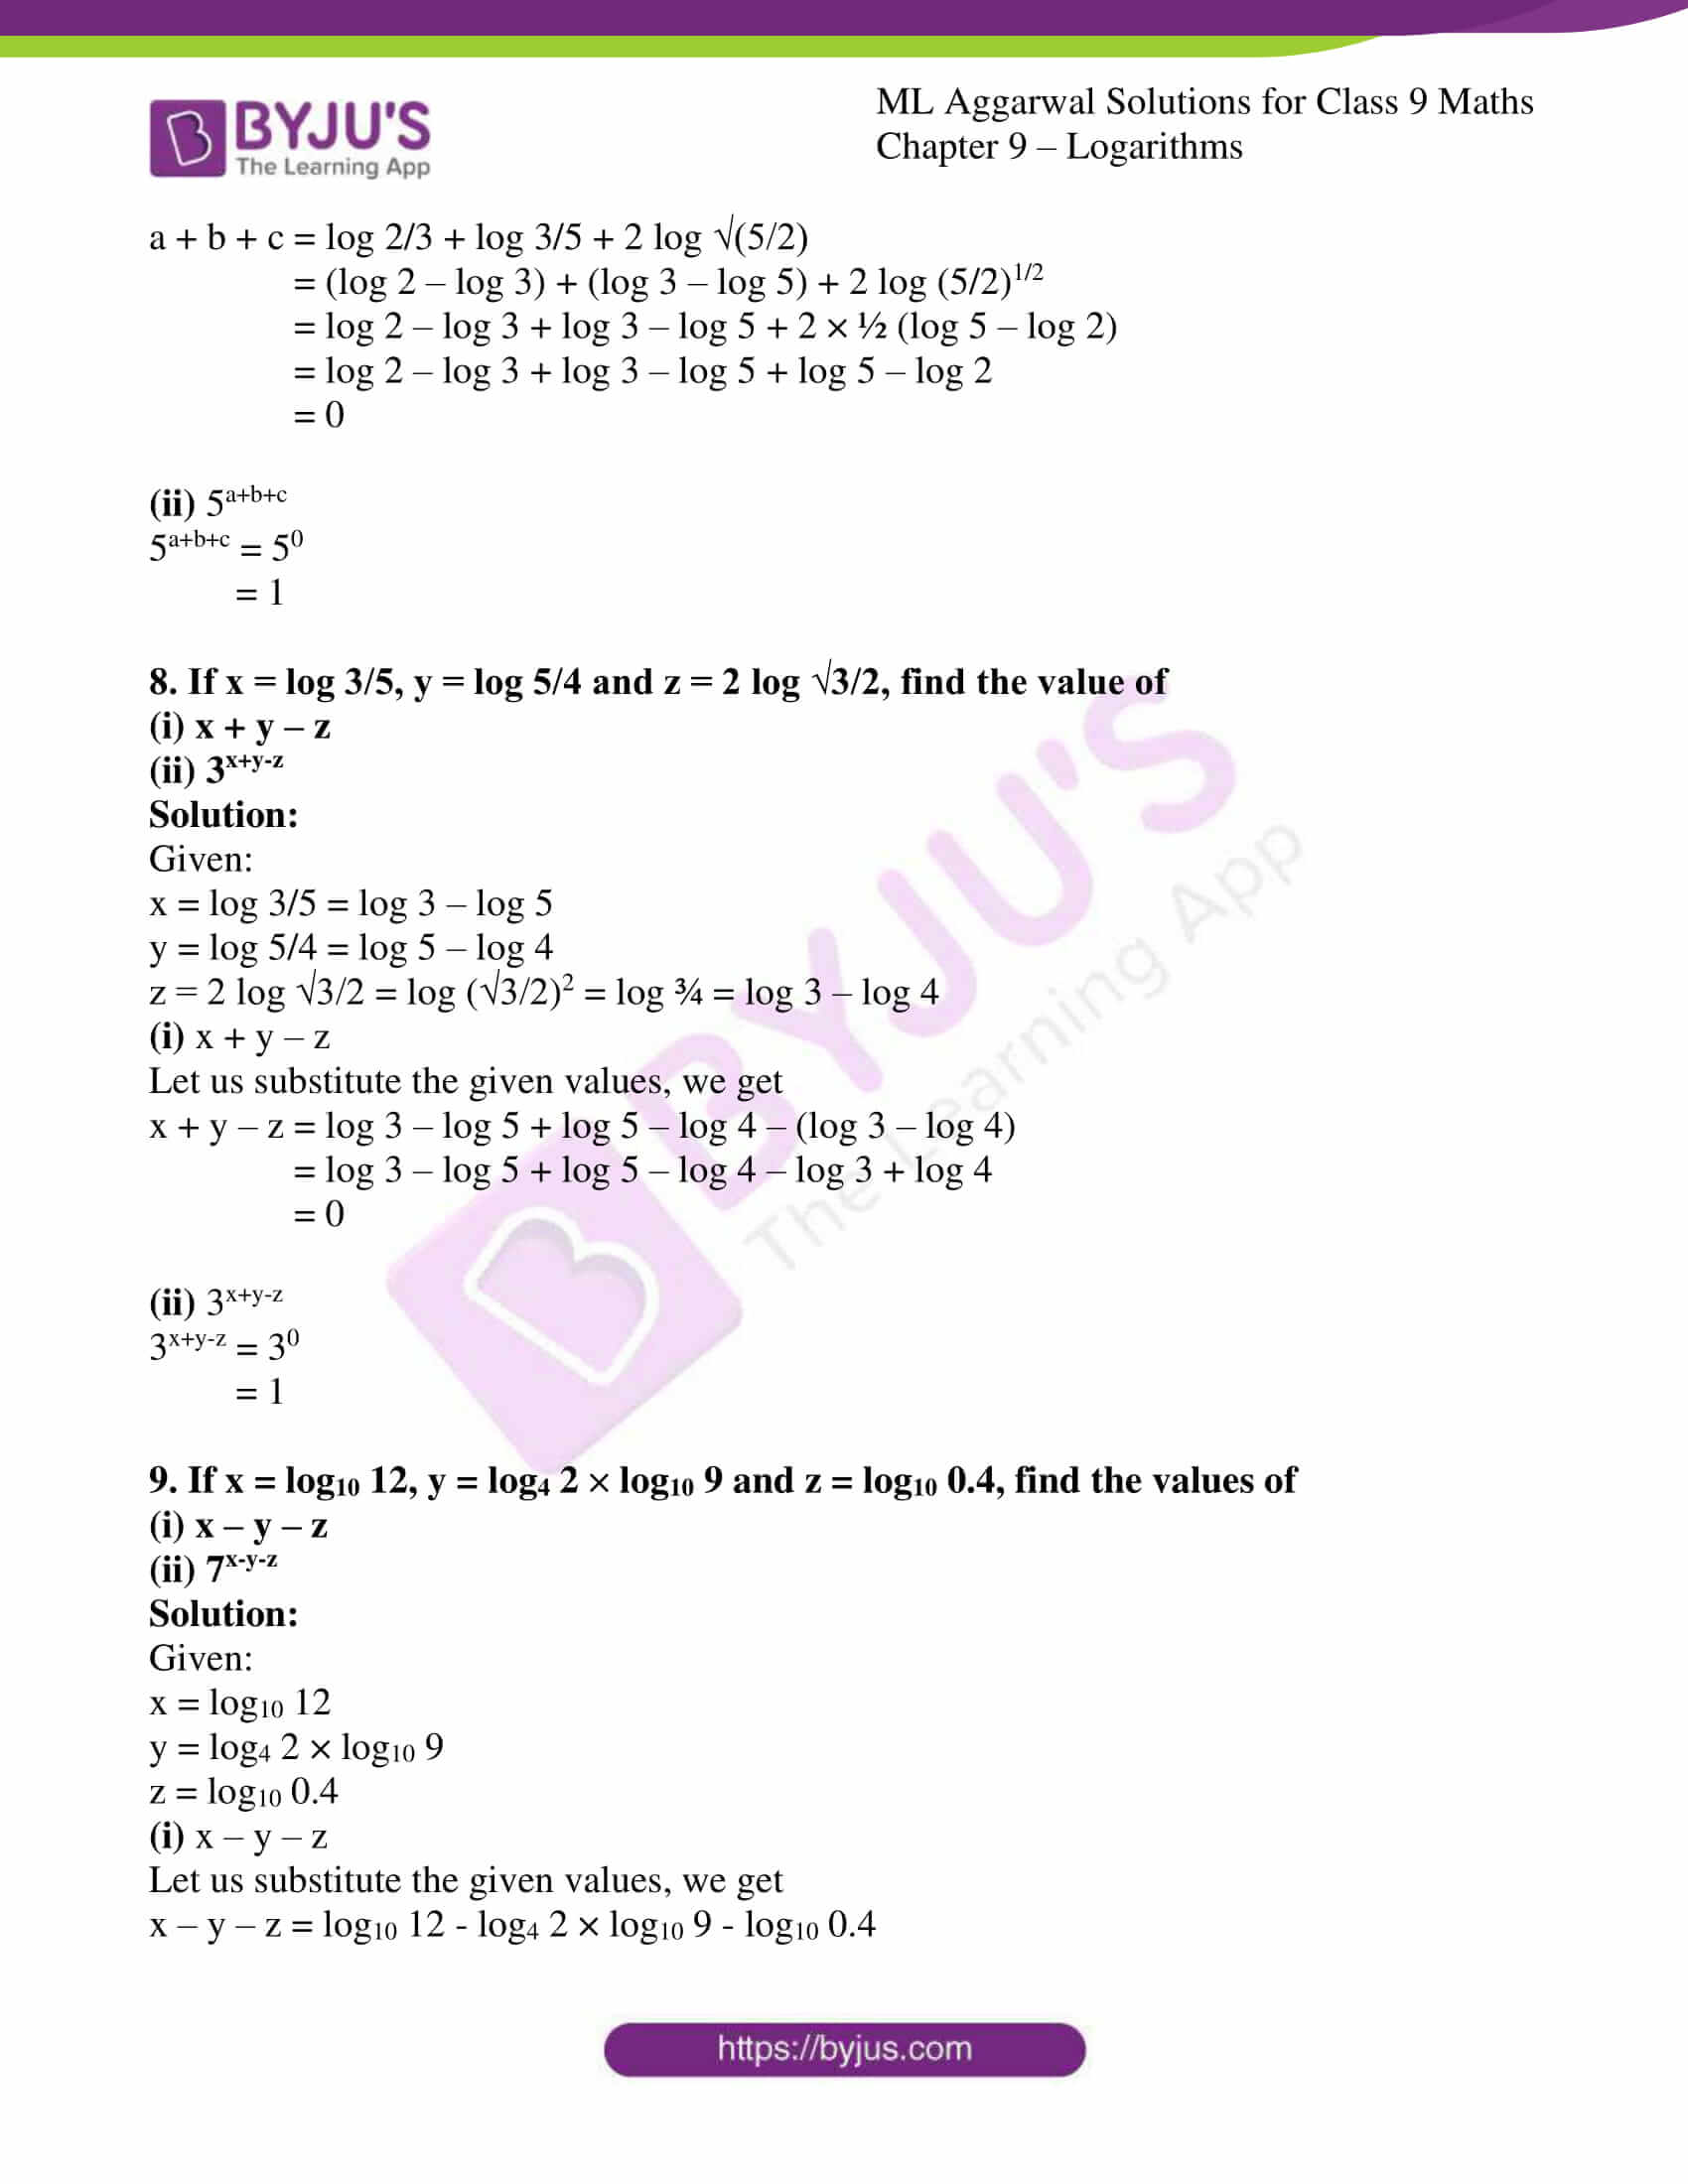 ml aggarwal solutions for class 9 maths chapter 9 20